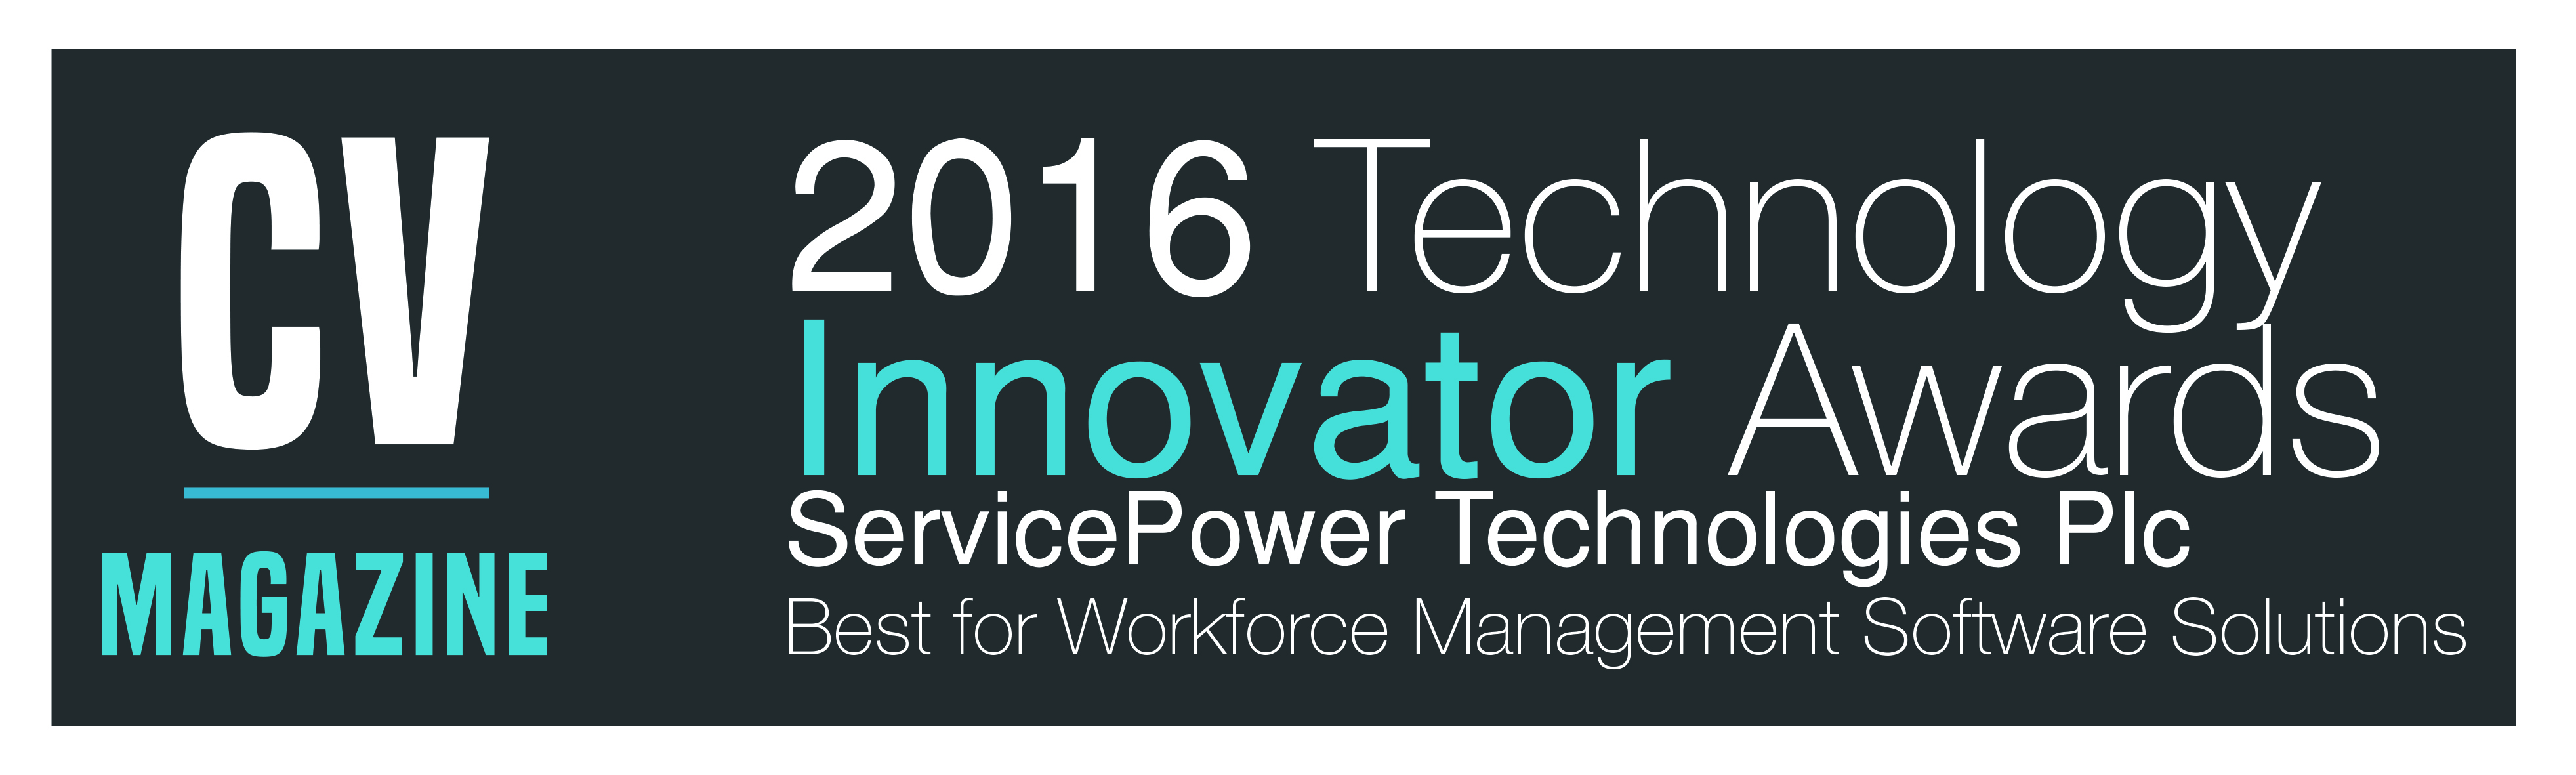 ServicePower_Technologies_Plc-Tech_Innovator_Awards_TI16128_Winners_Logo.jpg